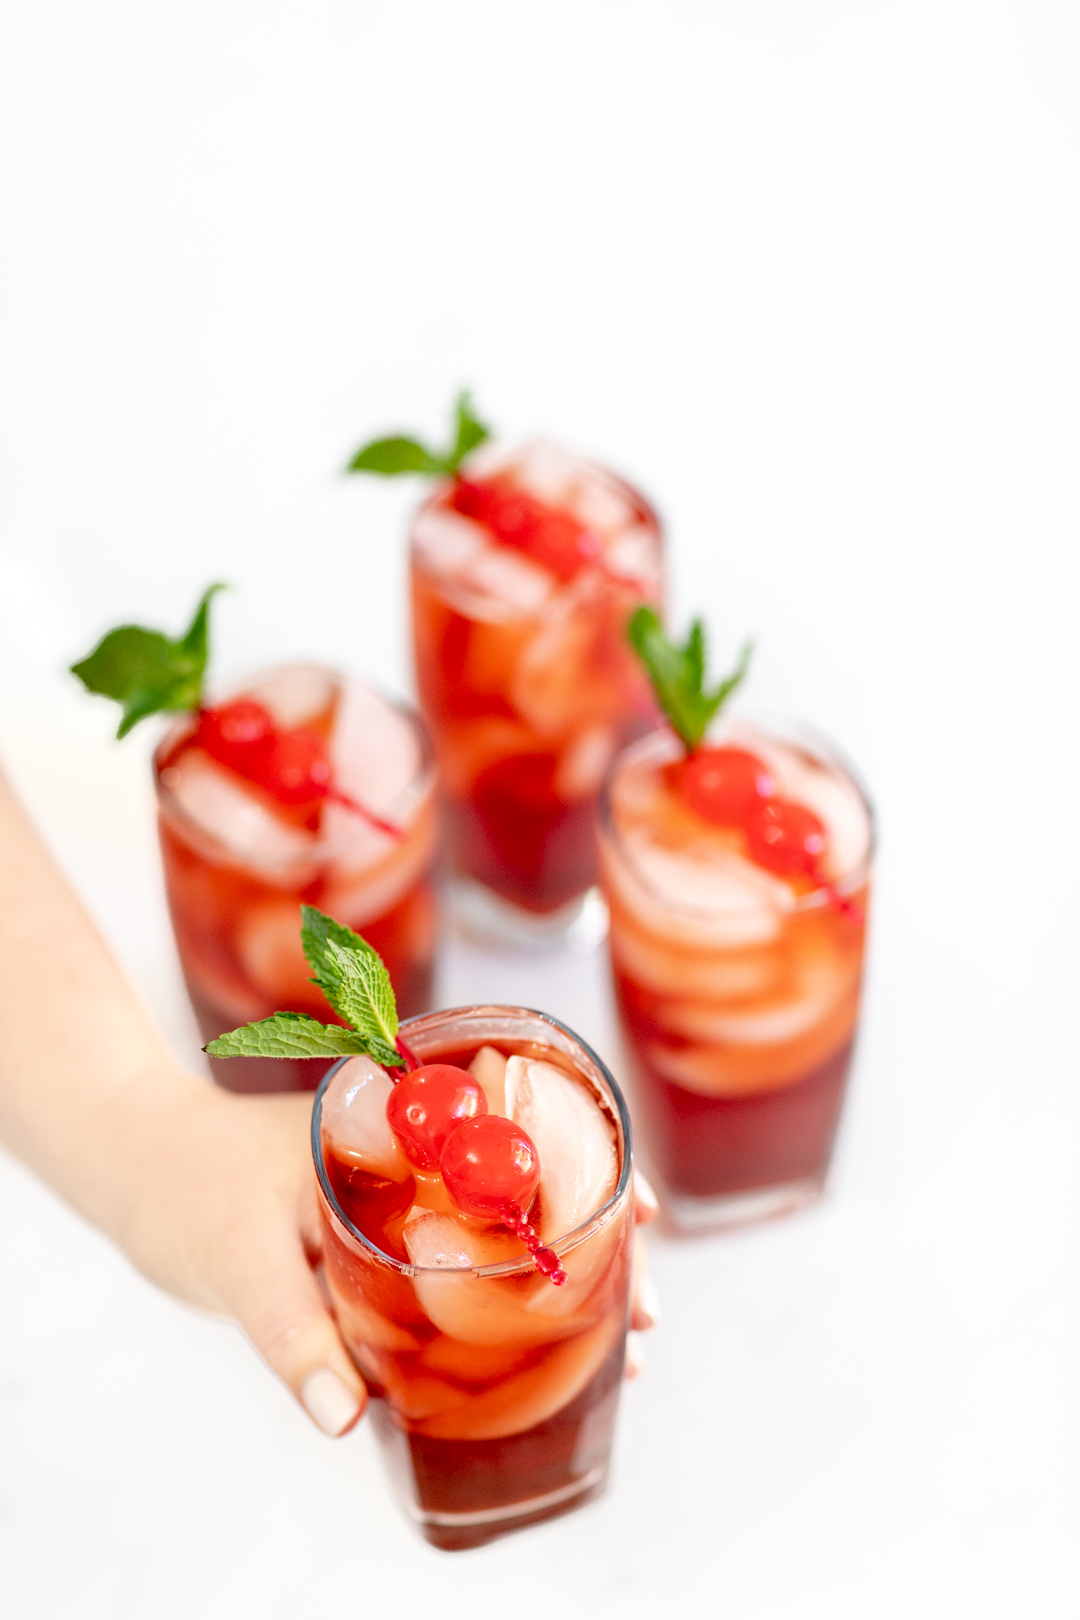 Iced tea with cherries and mint